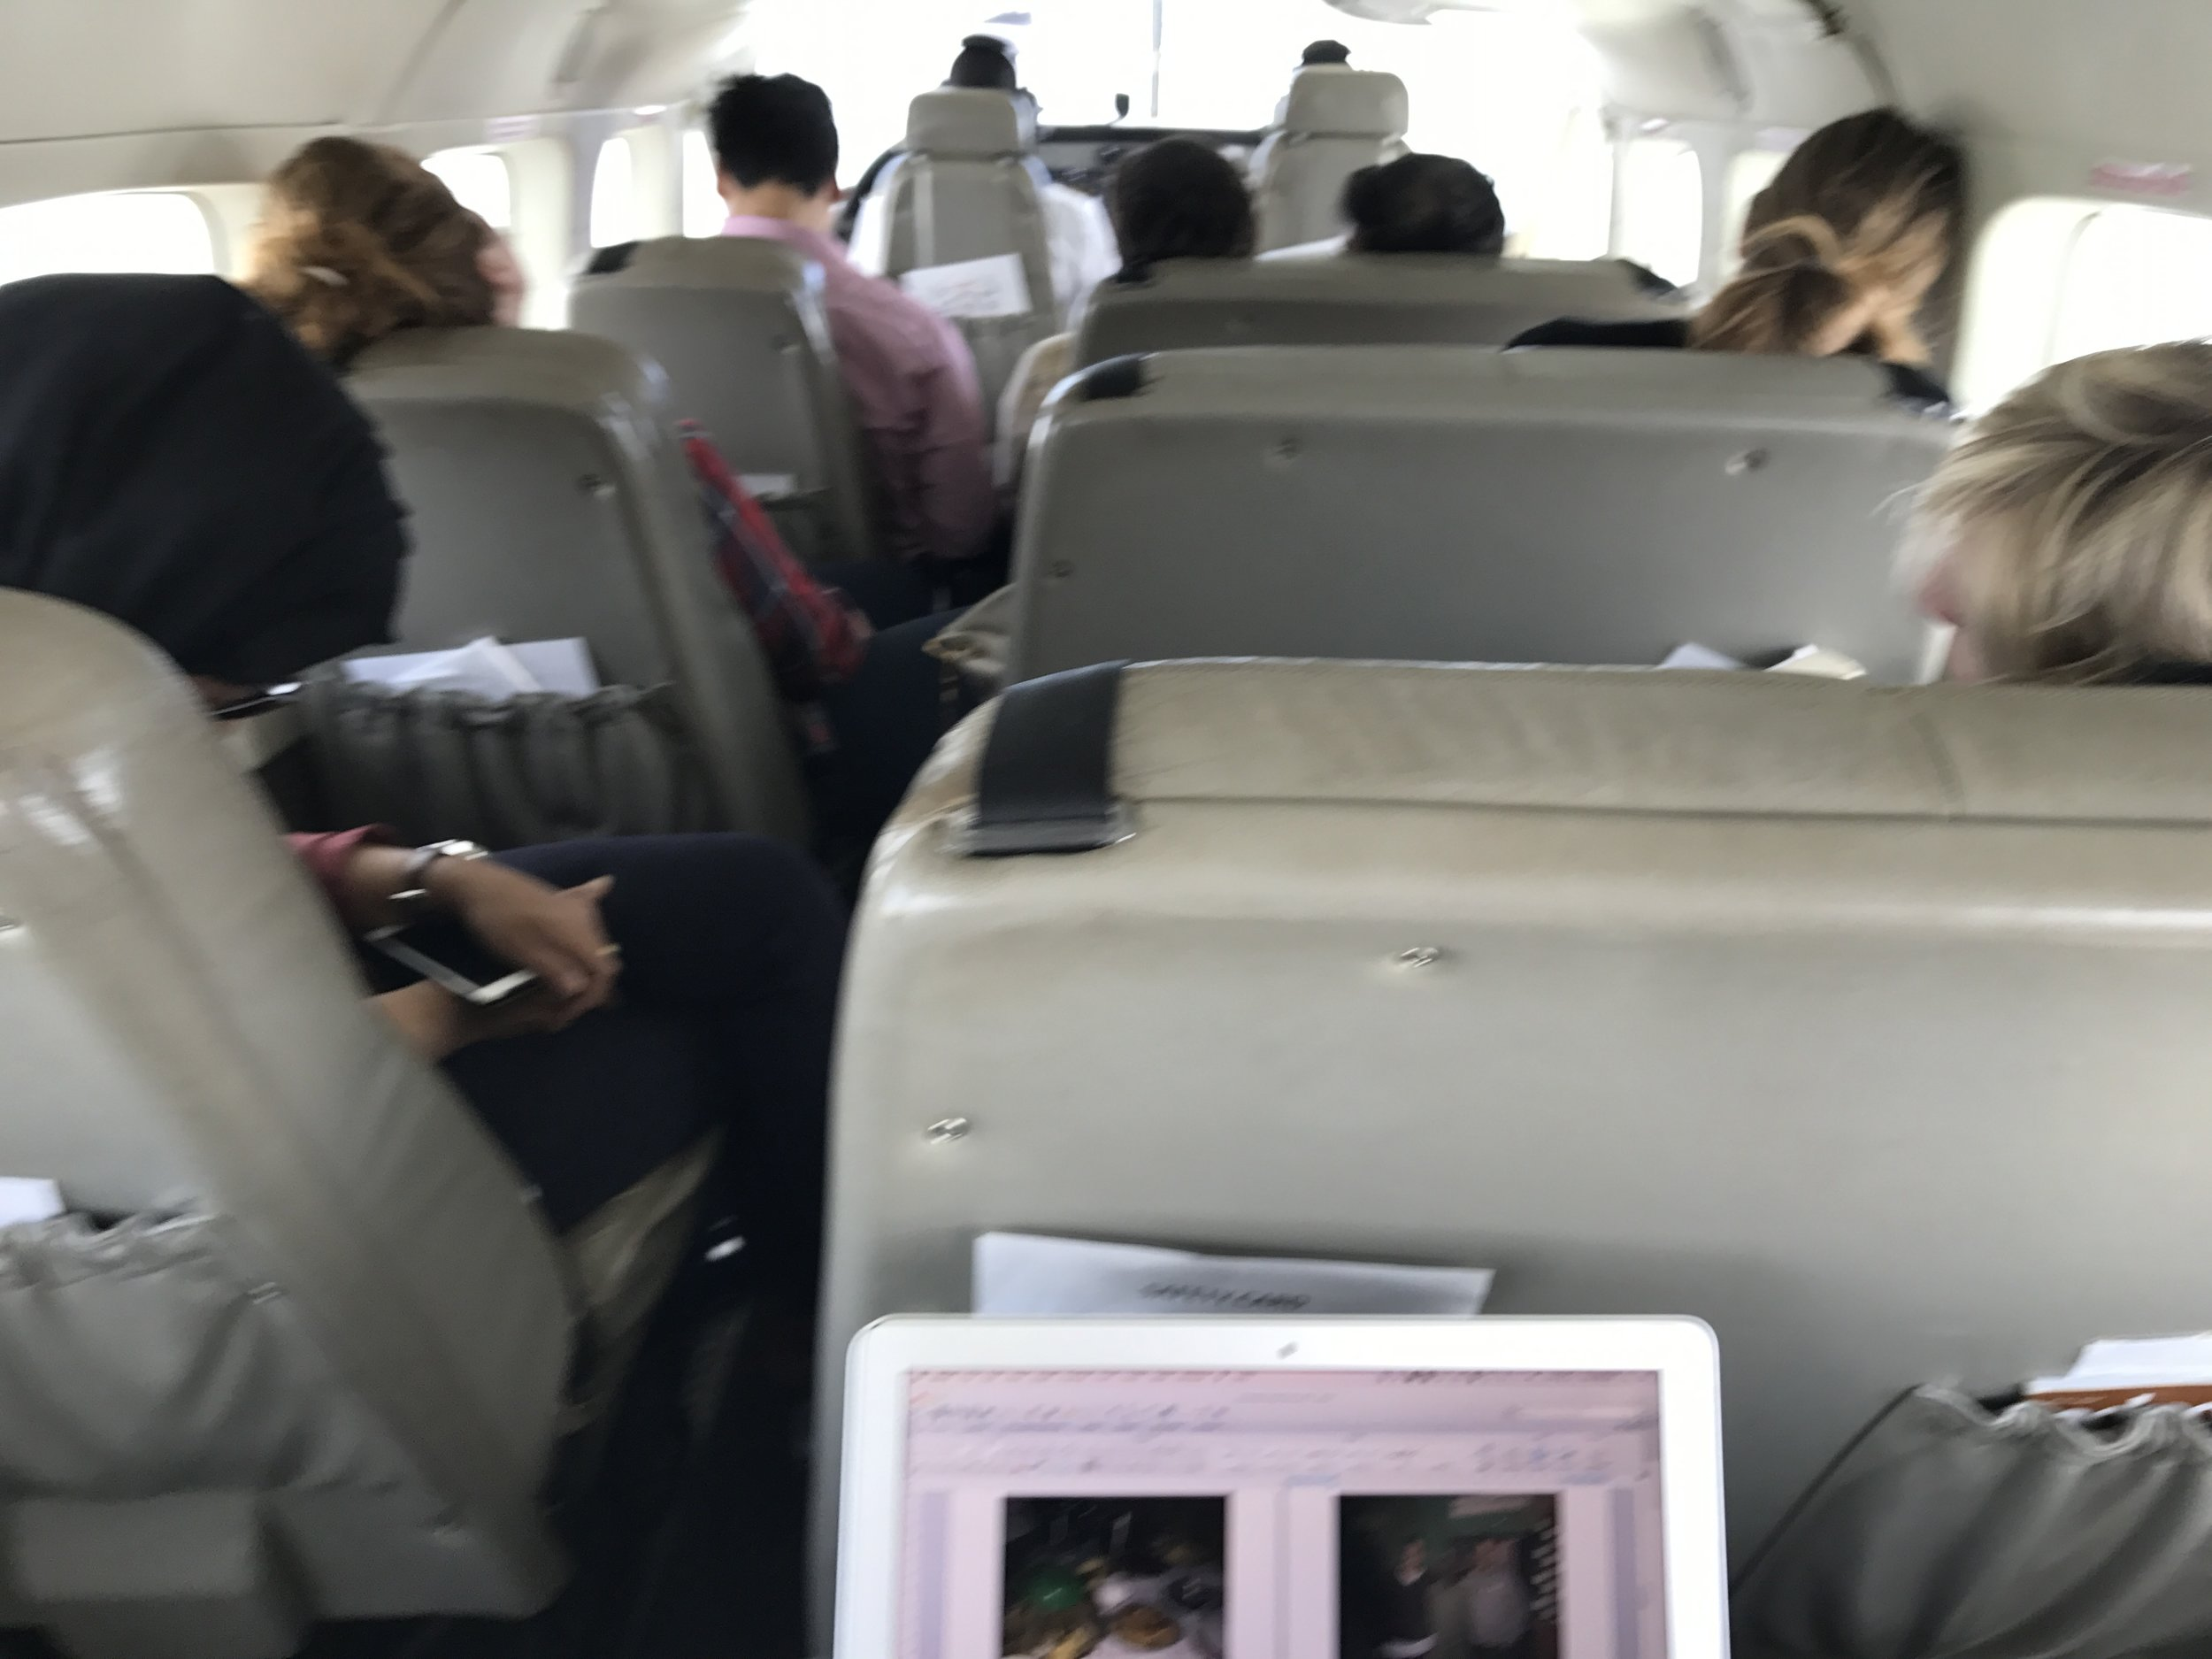 Our final charter flight back to Nairobi. Everyone passed out, except for (I hope) the pilots! Thanks for all of the hard work team! You have about 4 months to recover until the next one!